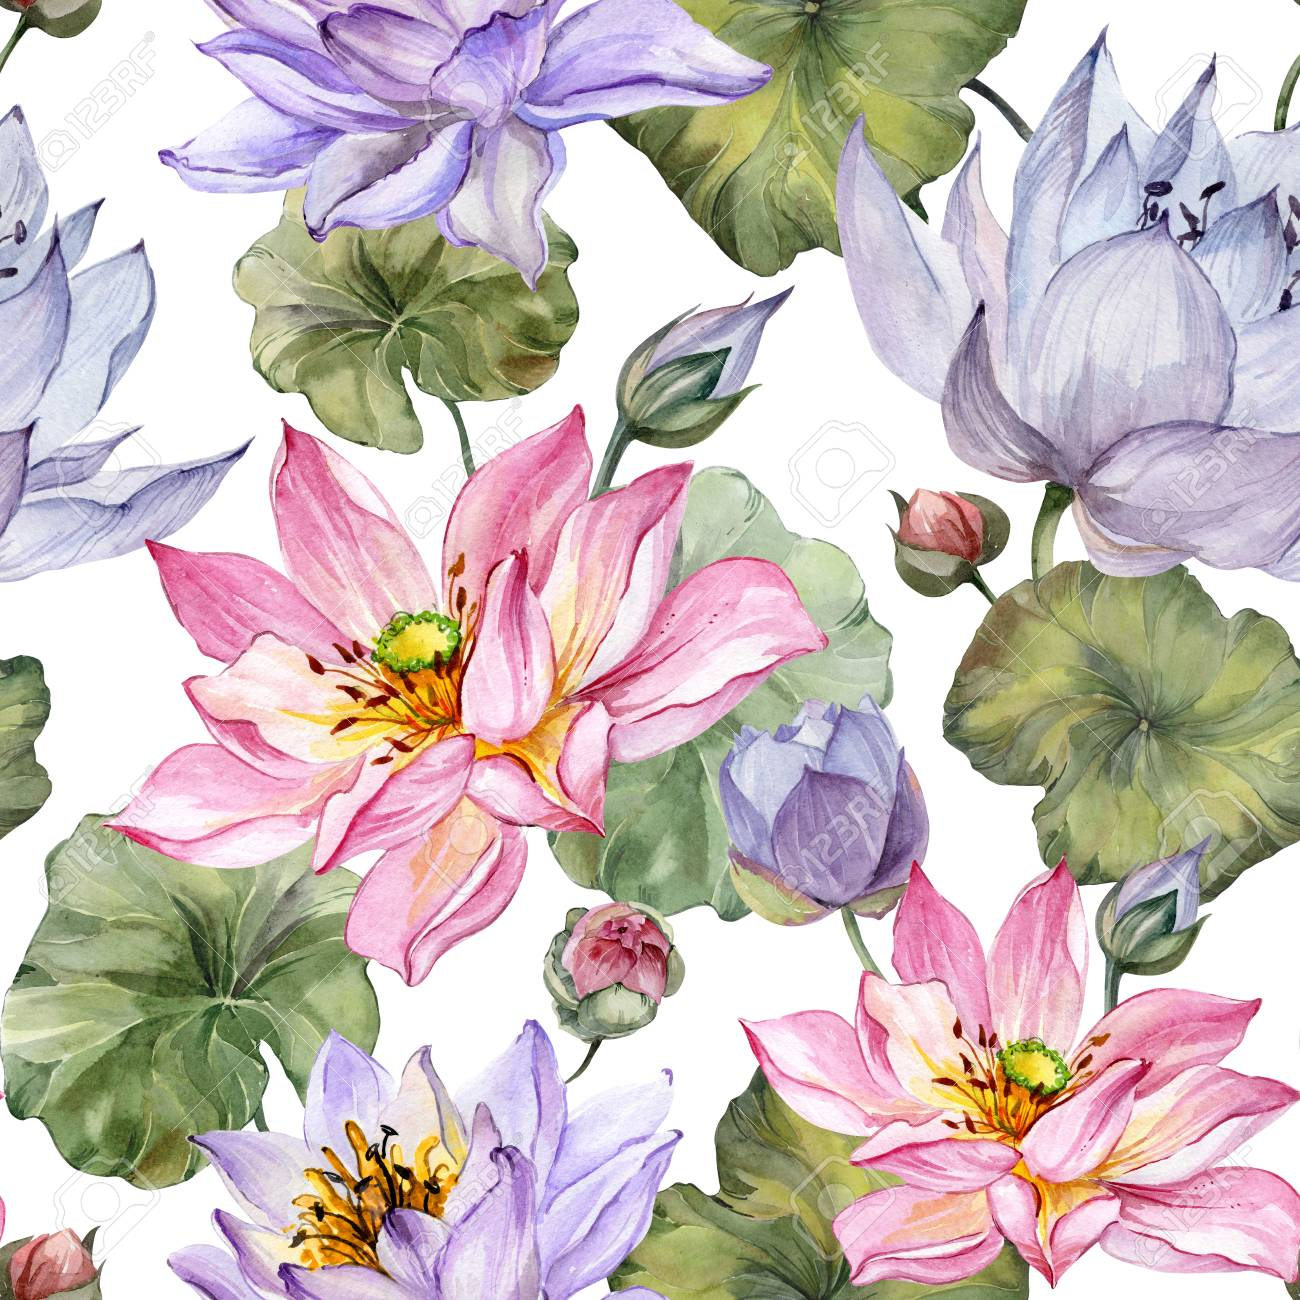 Design Of Textile Or Wallpaper Beautiful Floral Seamless Pattern Large Pink And Purple Lotus Flowers With Leaves On White Background